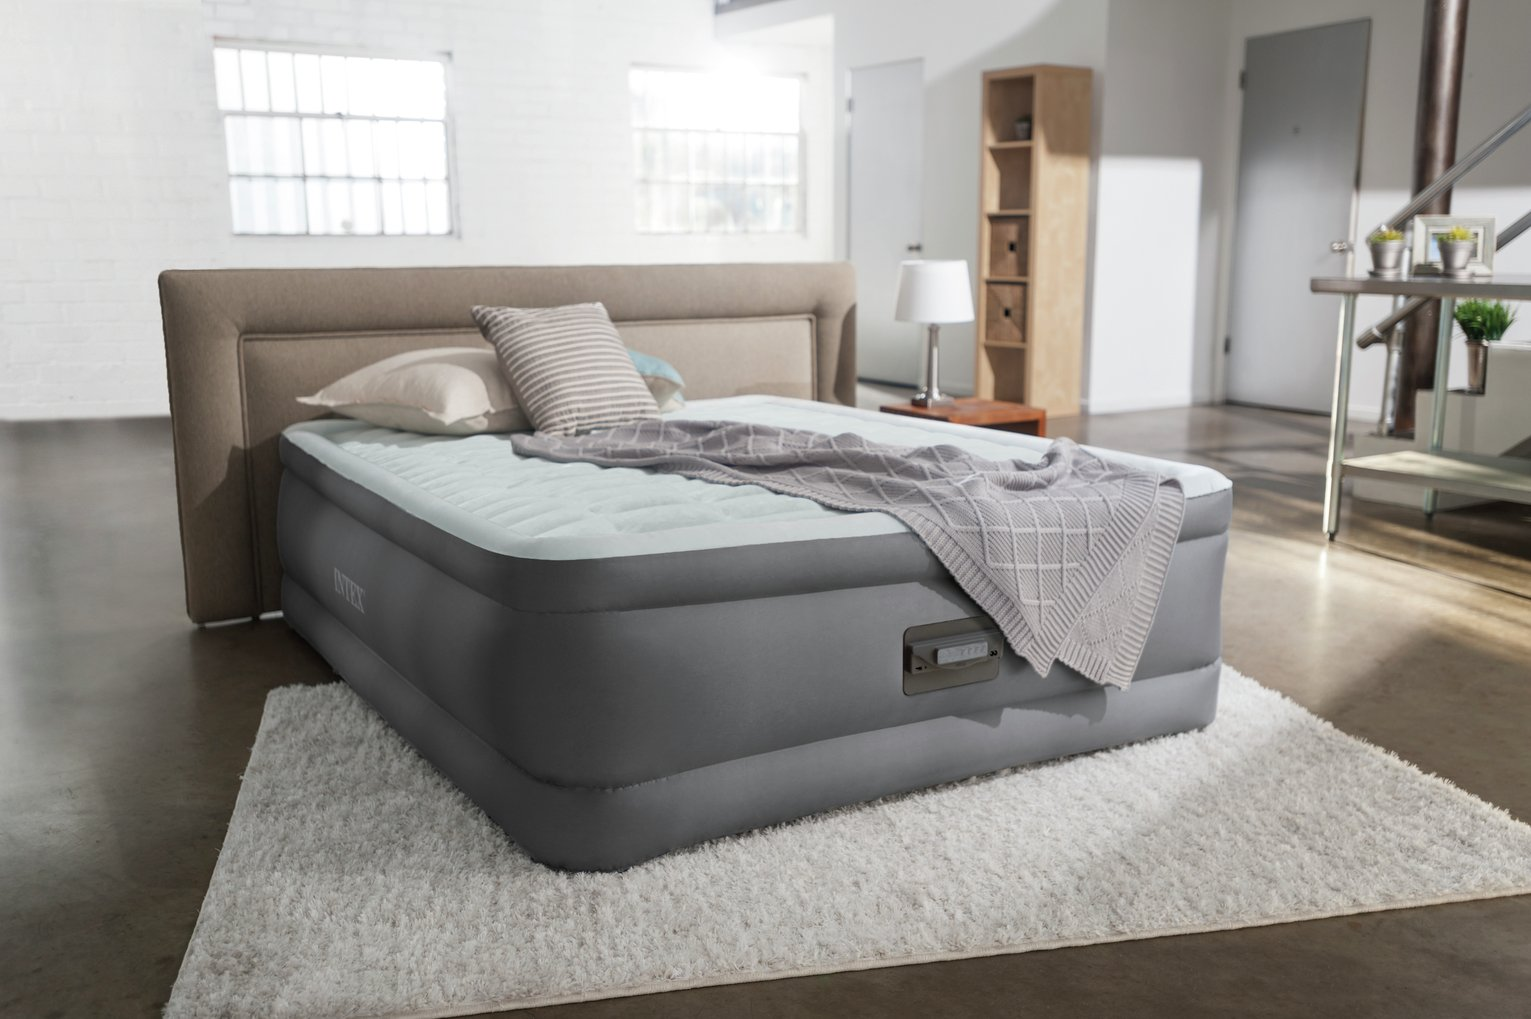 Intex Queen PremAire Raised Air Bed with Pump